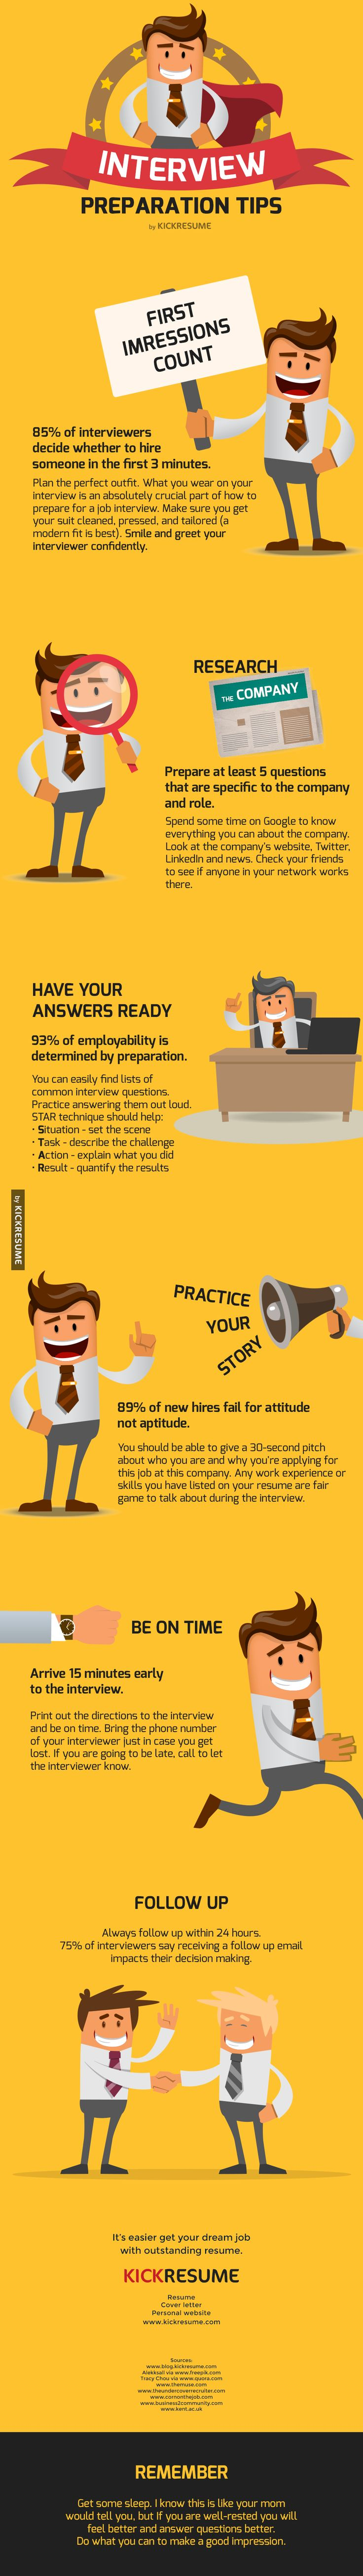 17 best ideas about job interview preparation on pinterest